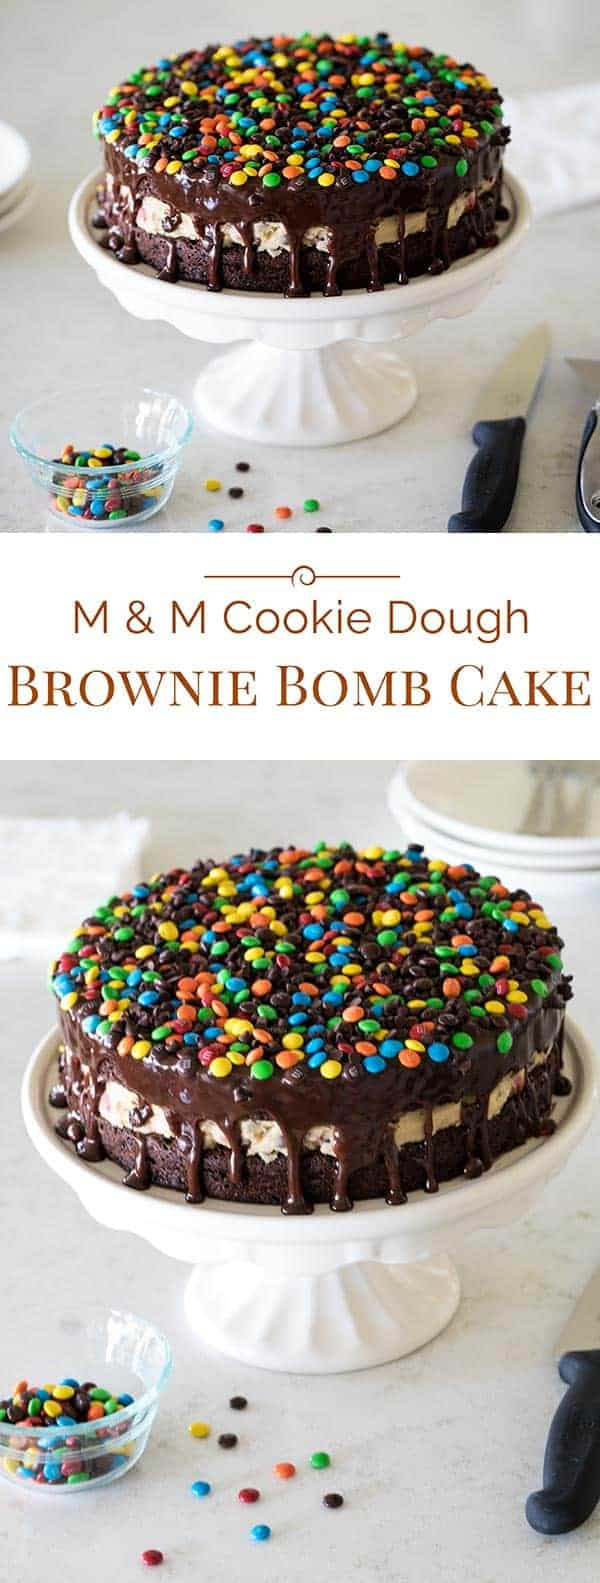 This M&M Cookie Dough Brownie Bomb Cake has two brownie layers with chocolate chip cookie dough in the middle. It's covered in chocolate ganache and topped with mini M&Ms. A deliciously, decadent dessert!